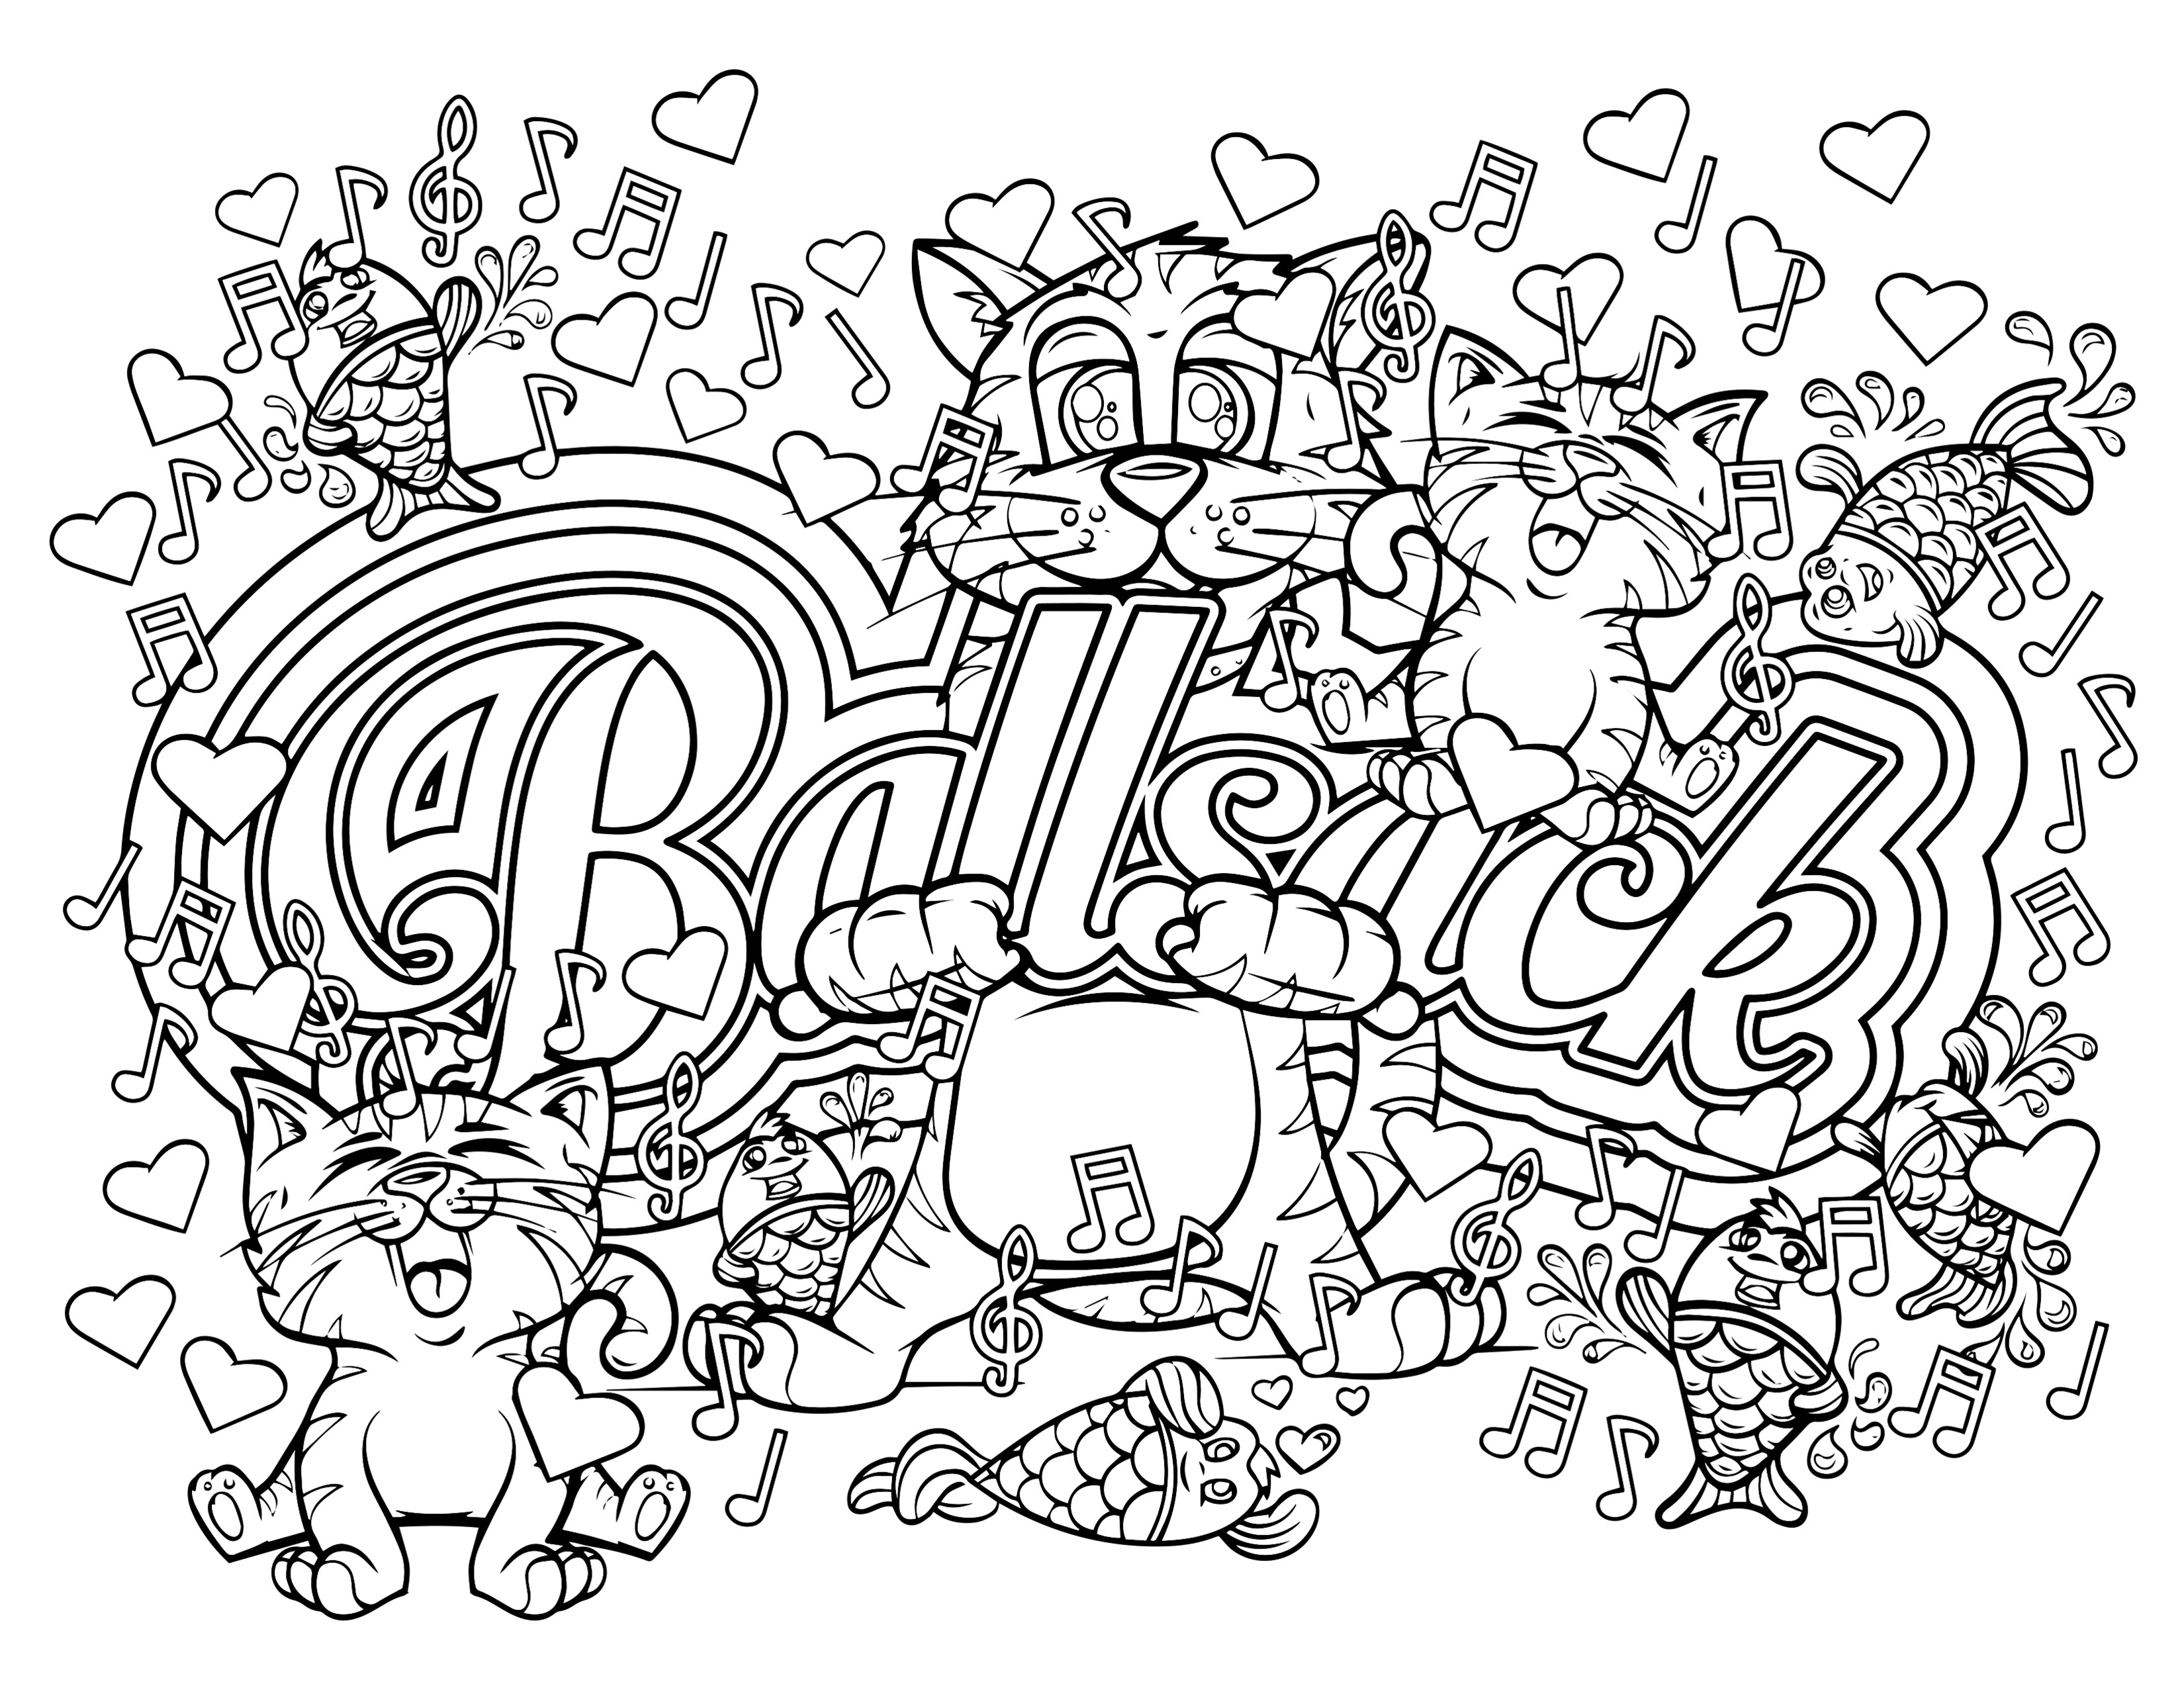 Swear Word Coloring Pages Printable Free  Brilliant Adult Swear Words Coloring Book Pages with Word